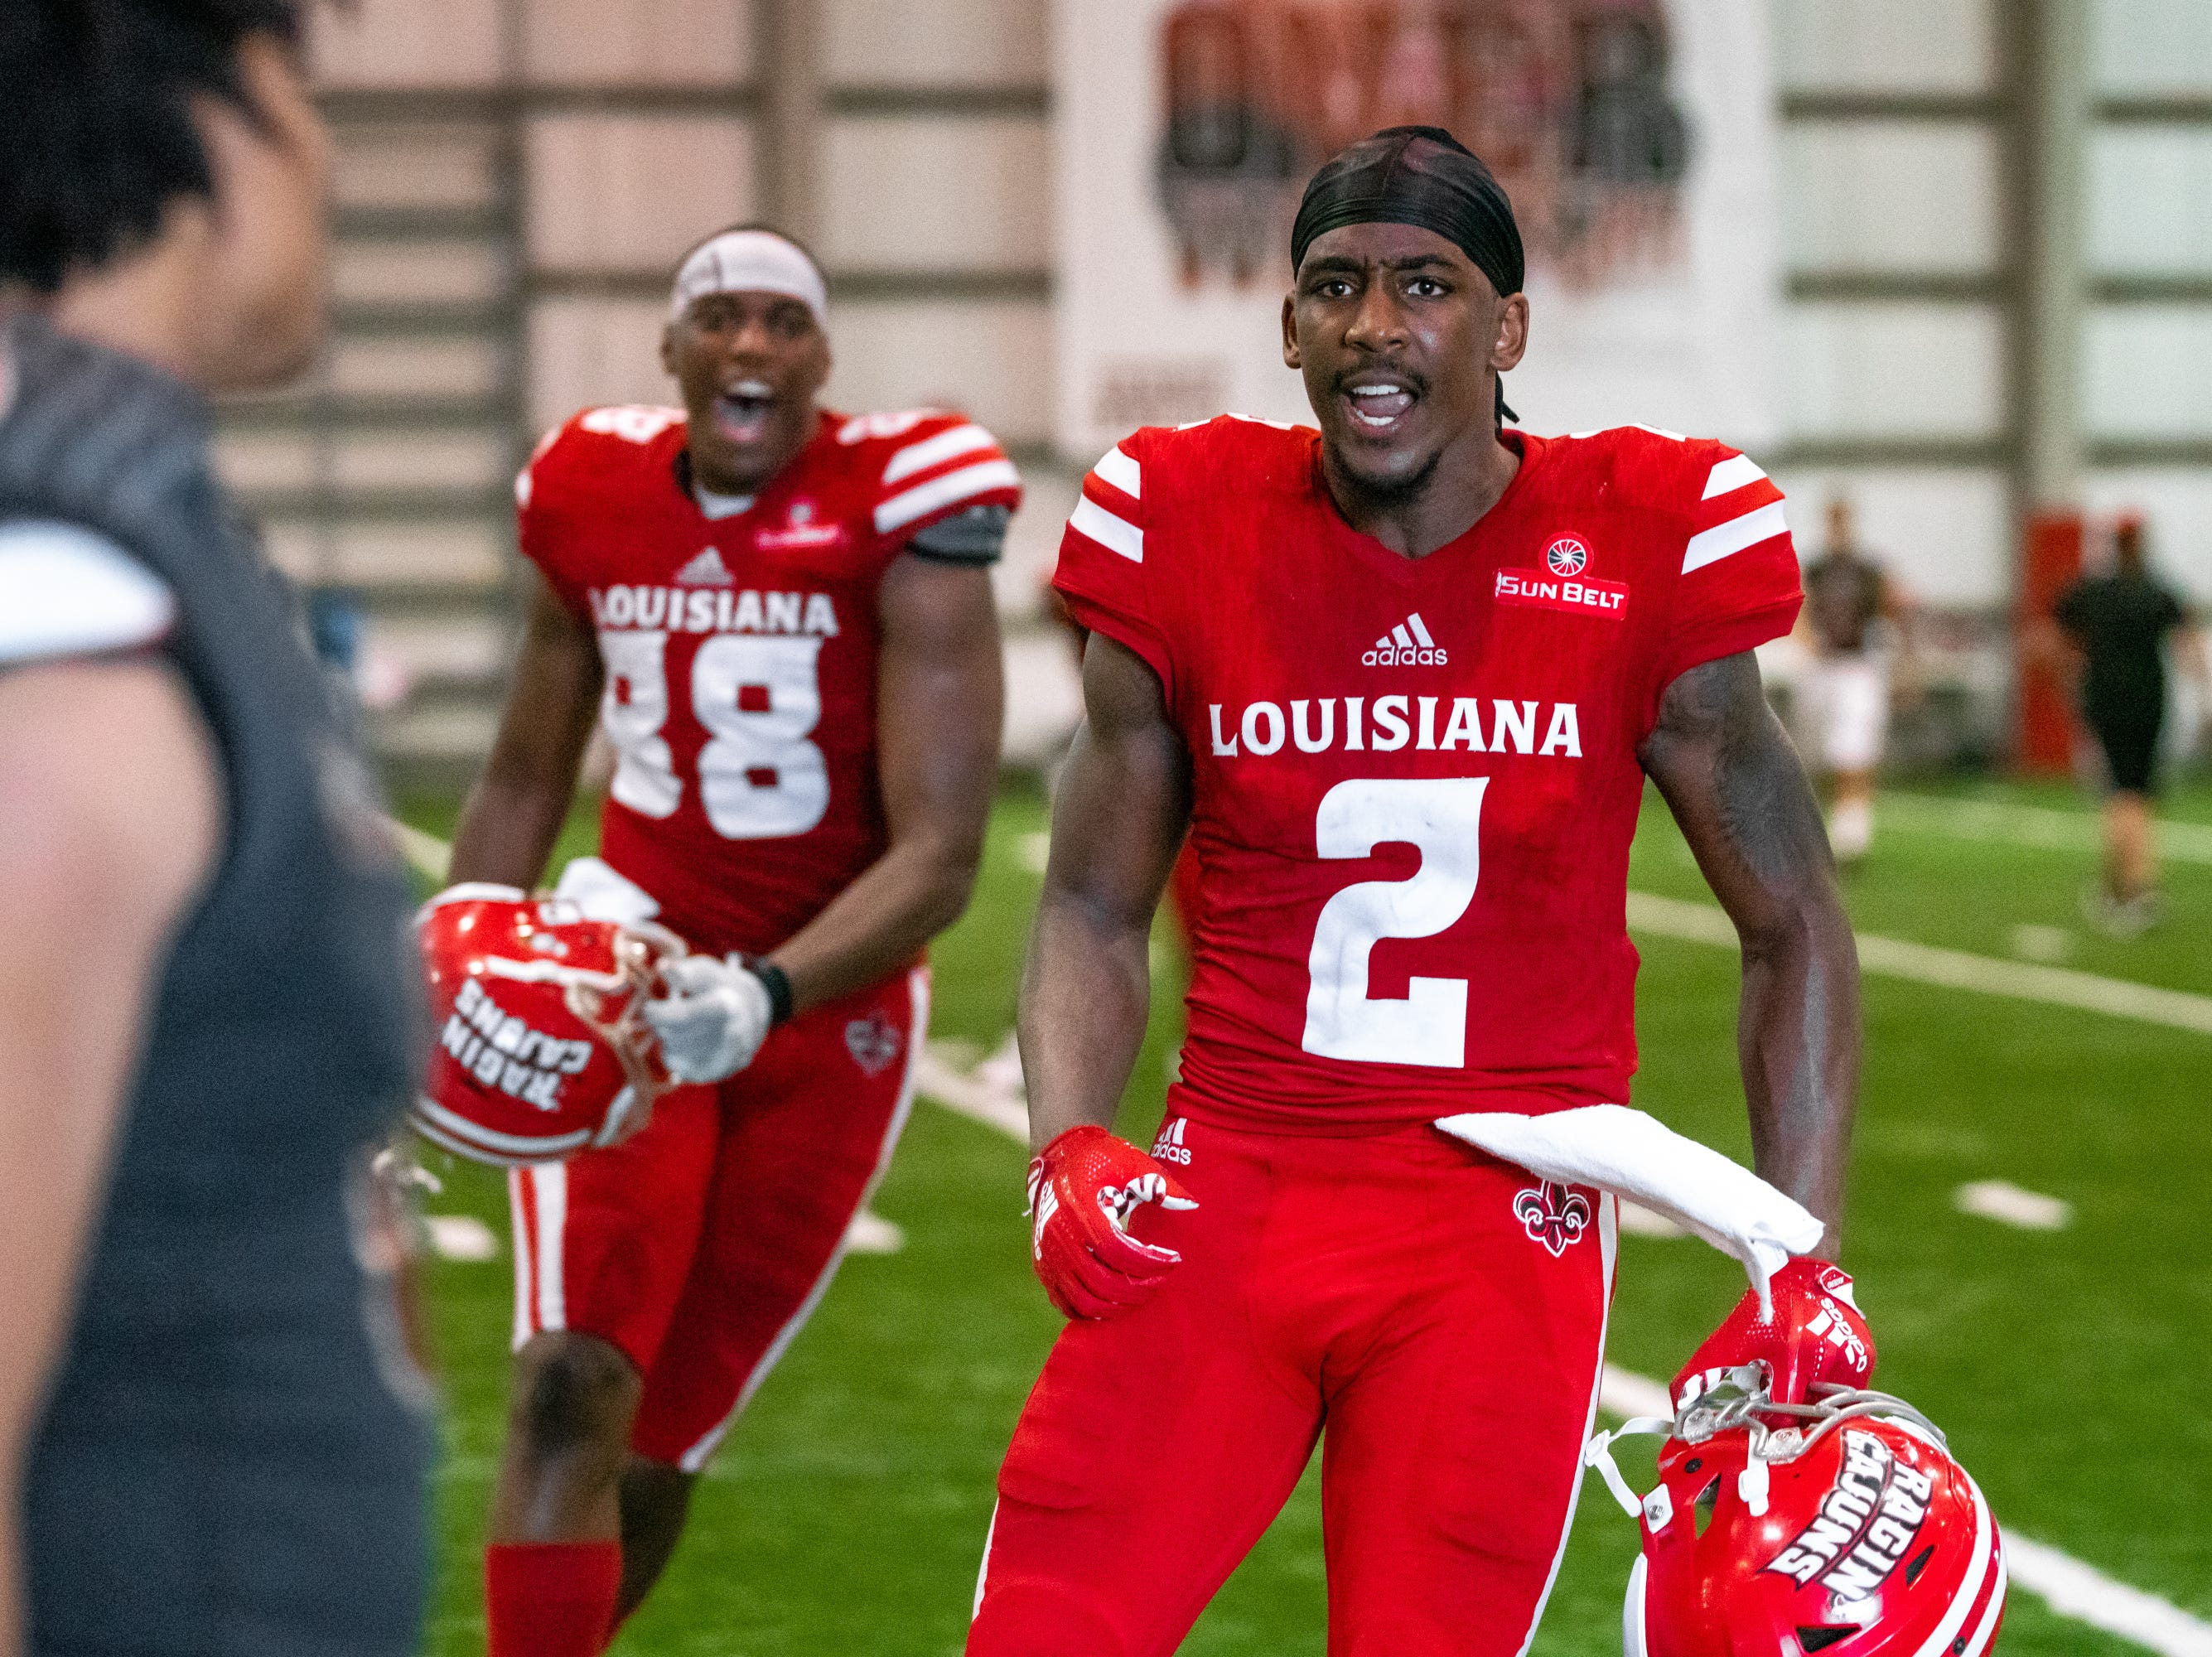 UL's Ja'Marcus Bradley celebrates the win after the game as the Ragin' Cajuns football team plays their annual Spring football game against one another in the Leon Moncla trainig facility on April 13, 2019.